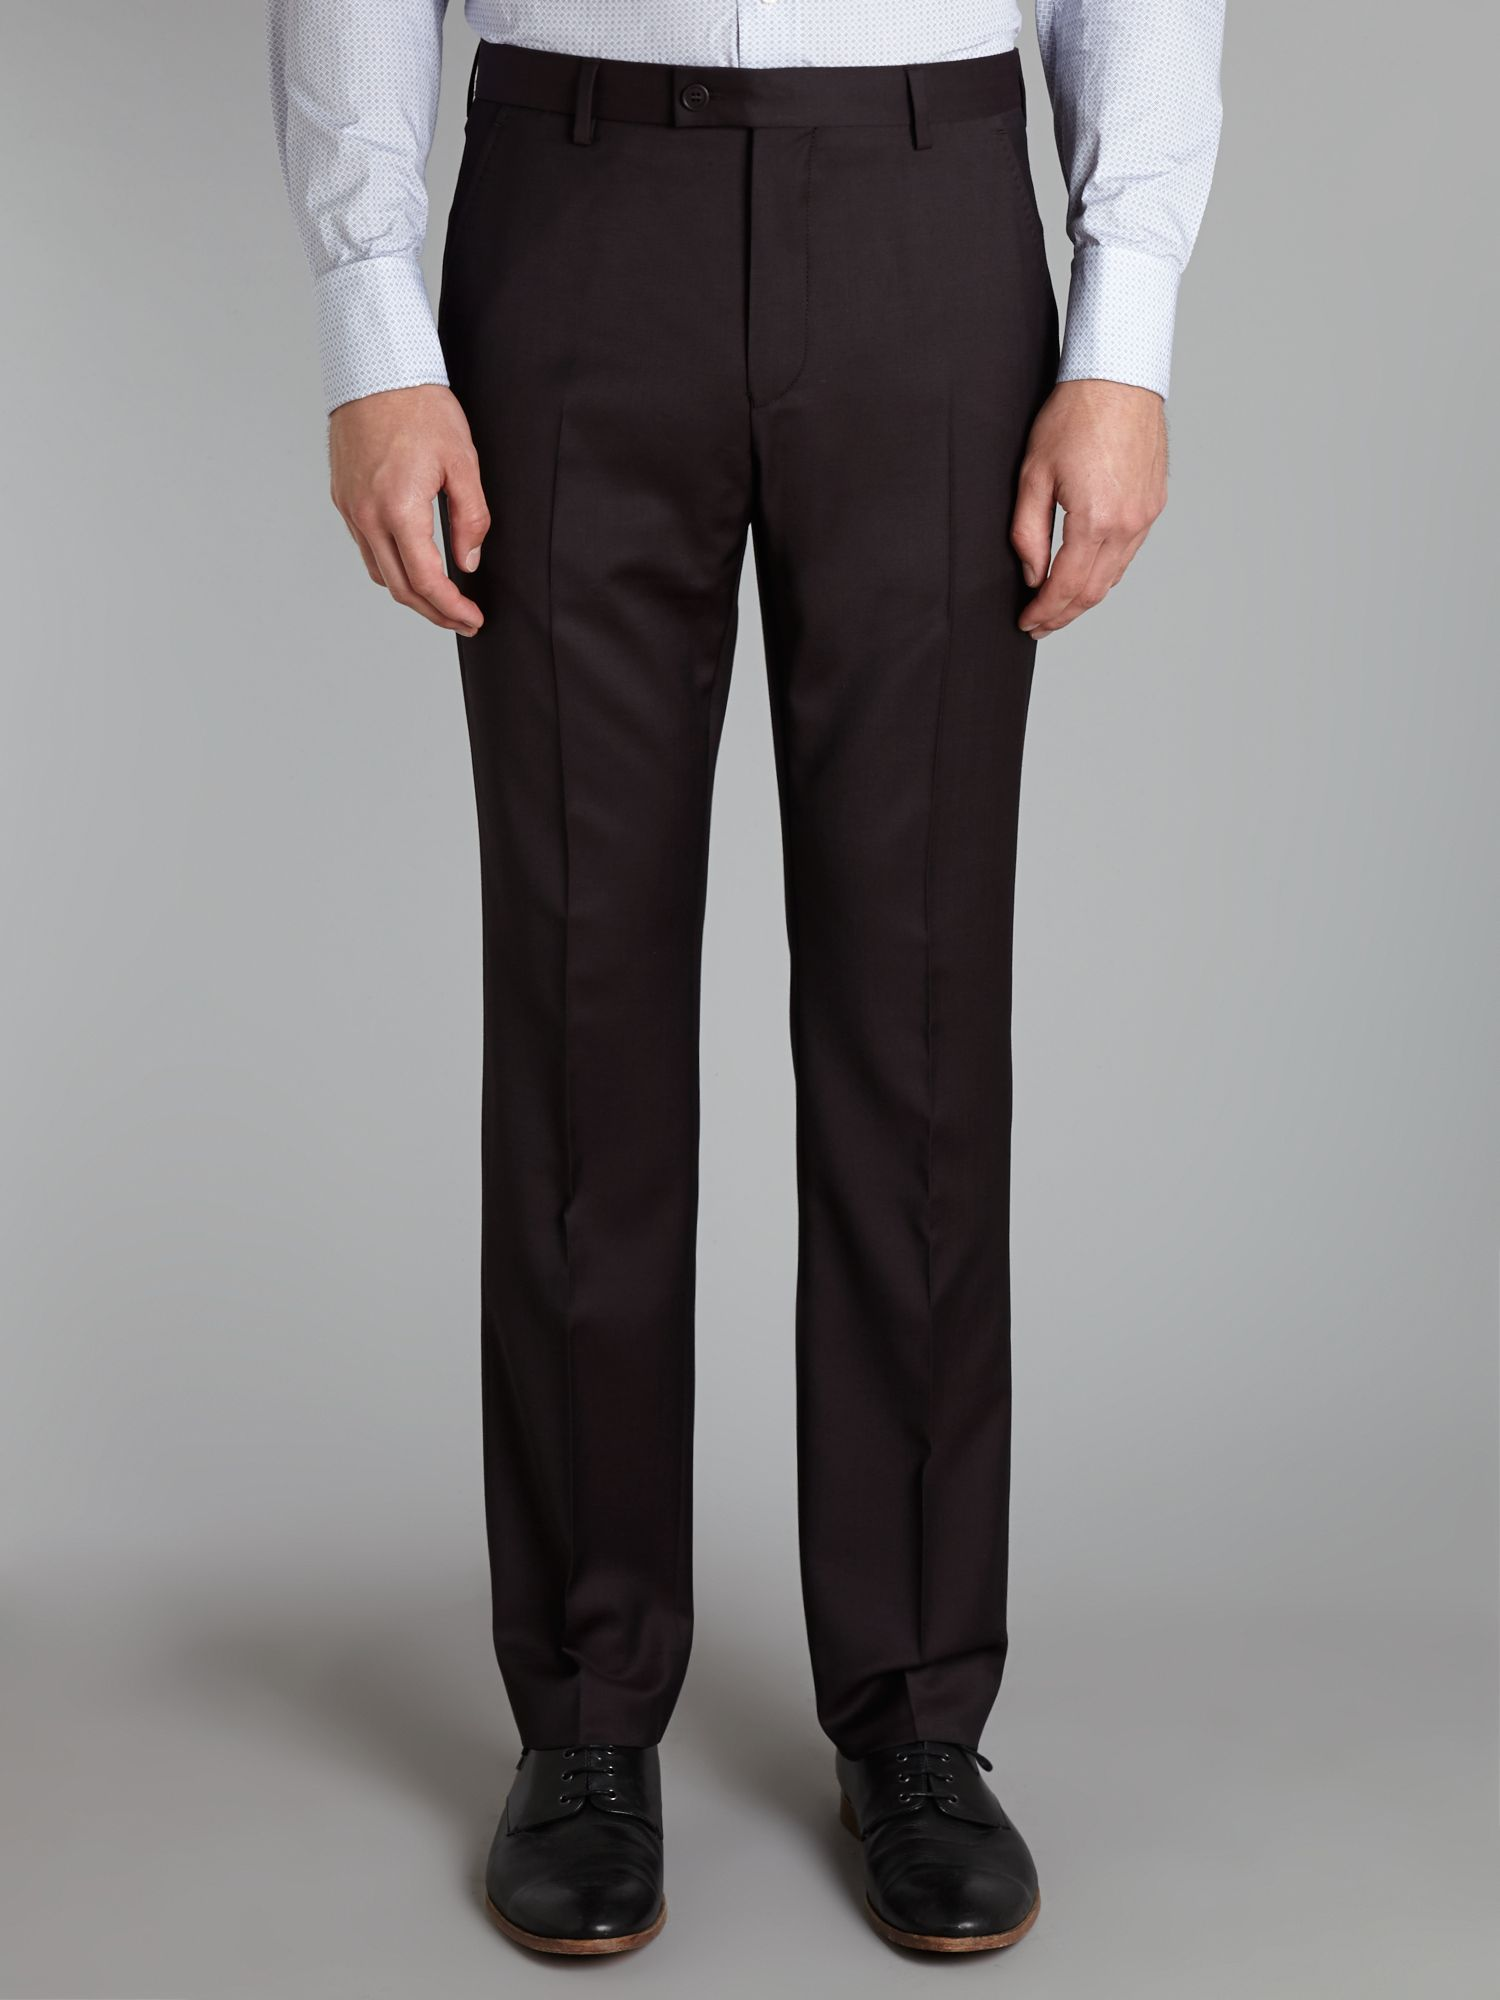 Galmag slick rick extra slim fit twill trouser